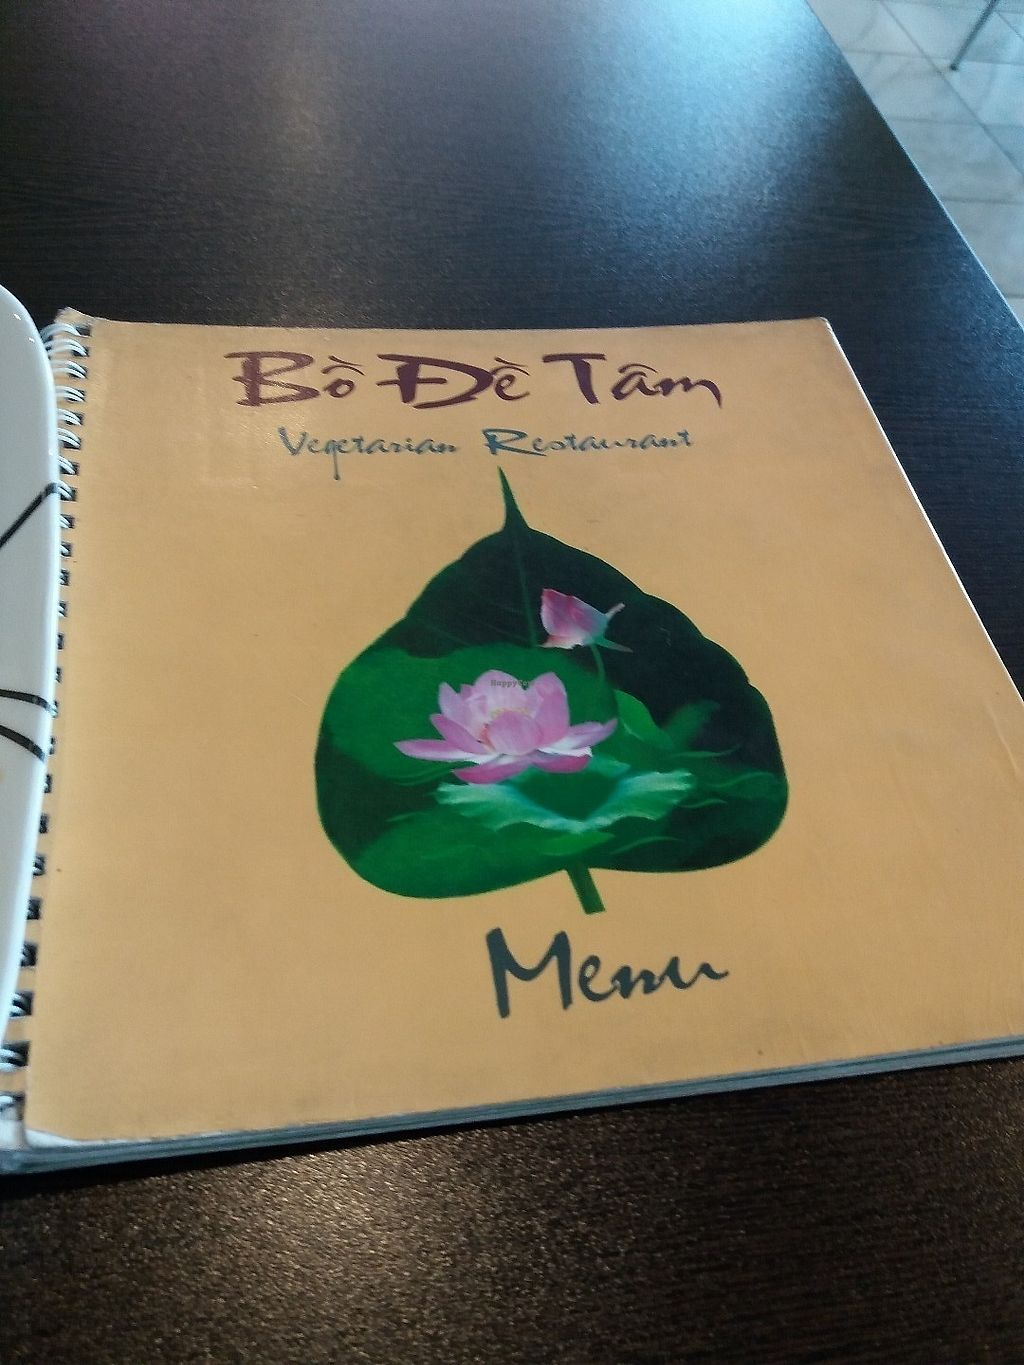 """Photo of Bo De Tam Nha Hang Chay  by <a href=""""/members/profile/veganvirtues"""">veganvirtues</a> <br/>Menu <br/> June 15, 2017  - <a href='/contact/abuse/image/88688/269275'>Report</a>"""